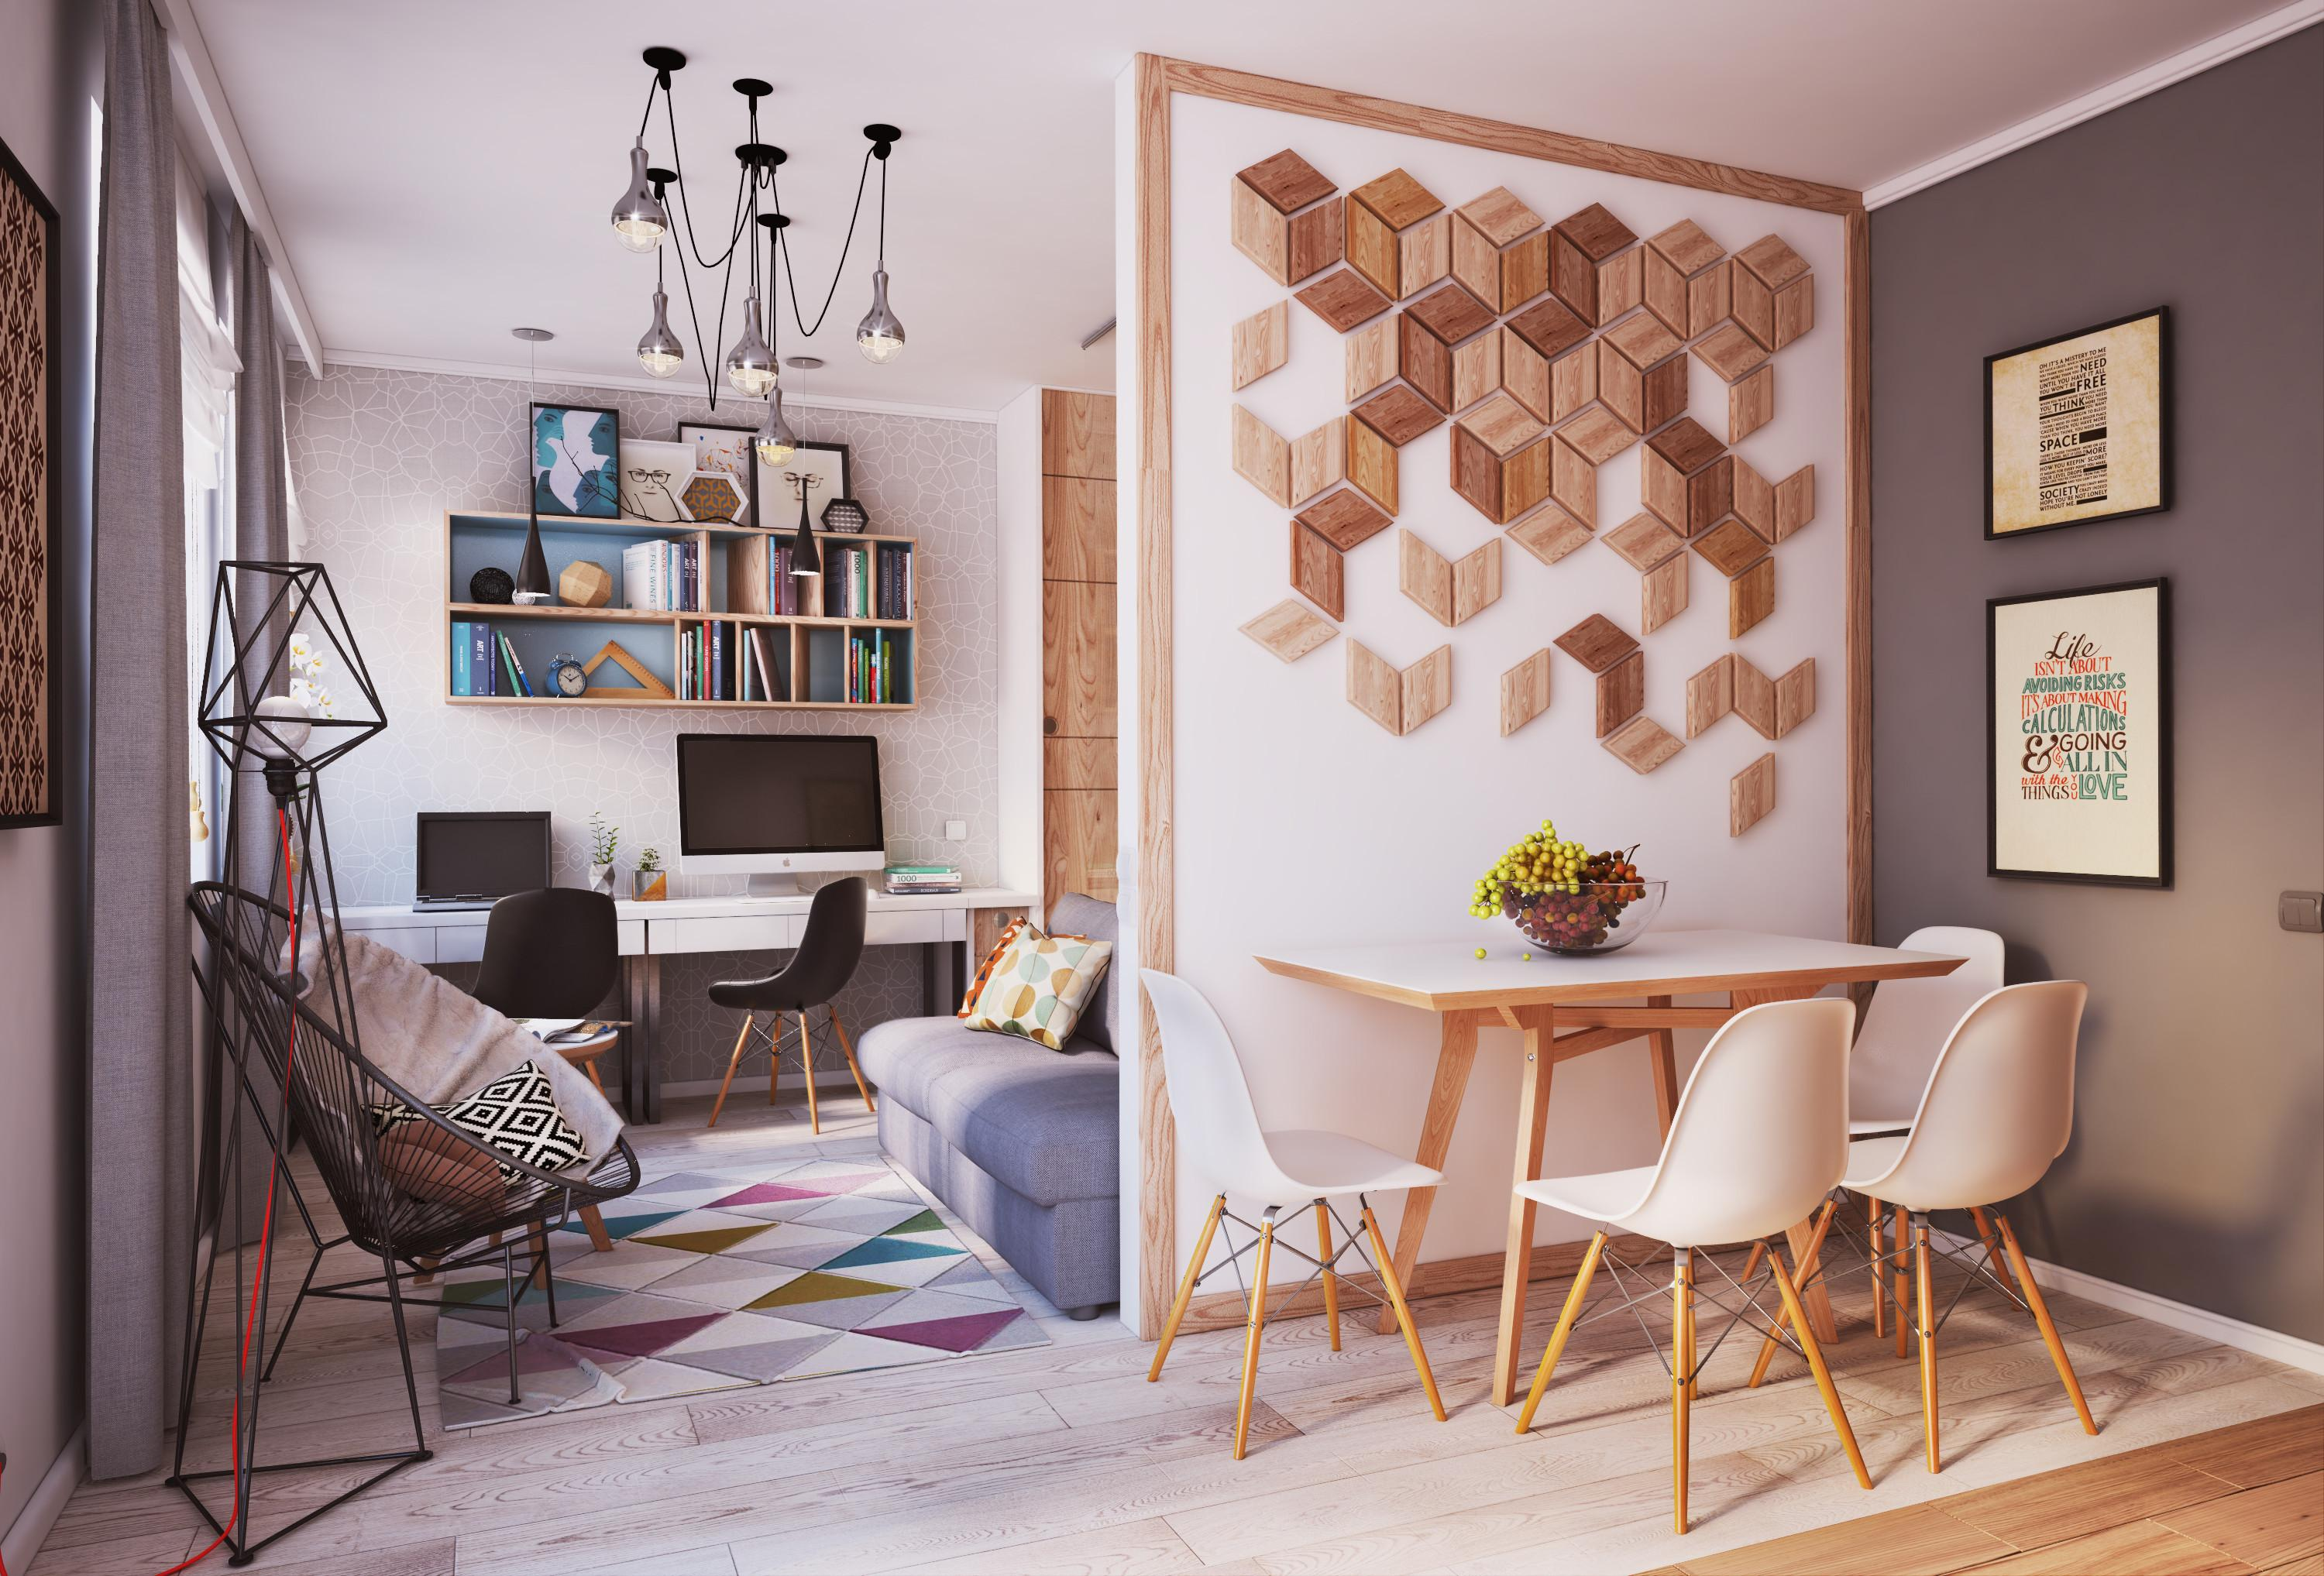 Sqm Modern Small Apartment Interior Design Idea